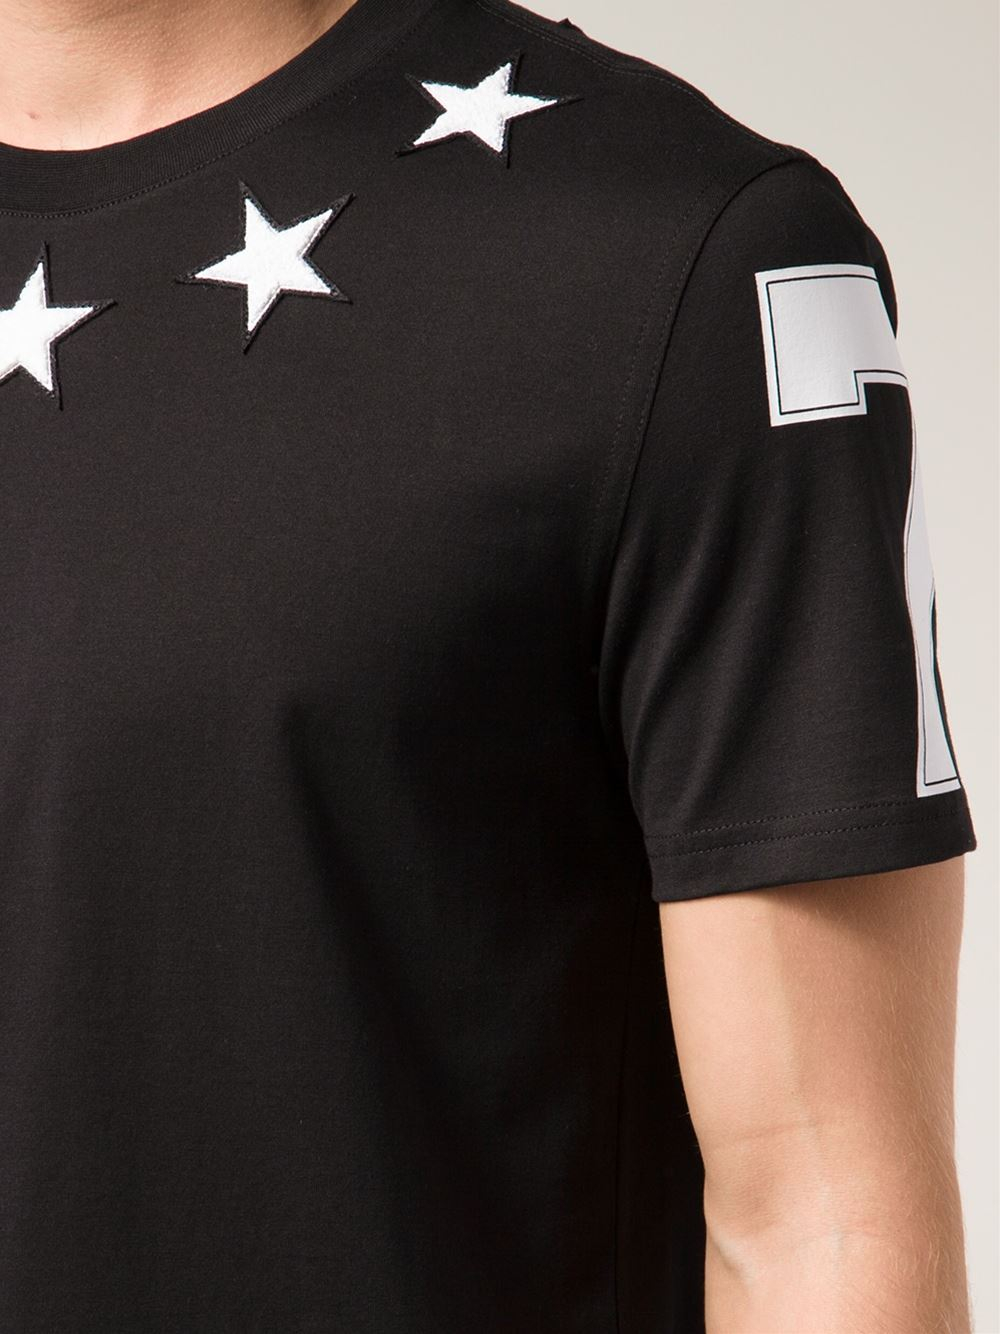 Top Lyst - Givenchy Terry Cloth Star T-Shirt in Black for Men KQ53